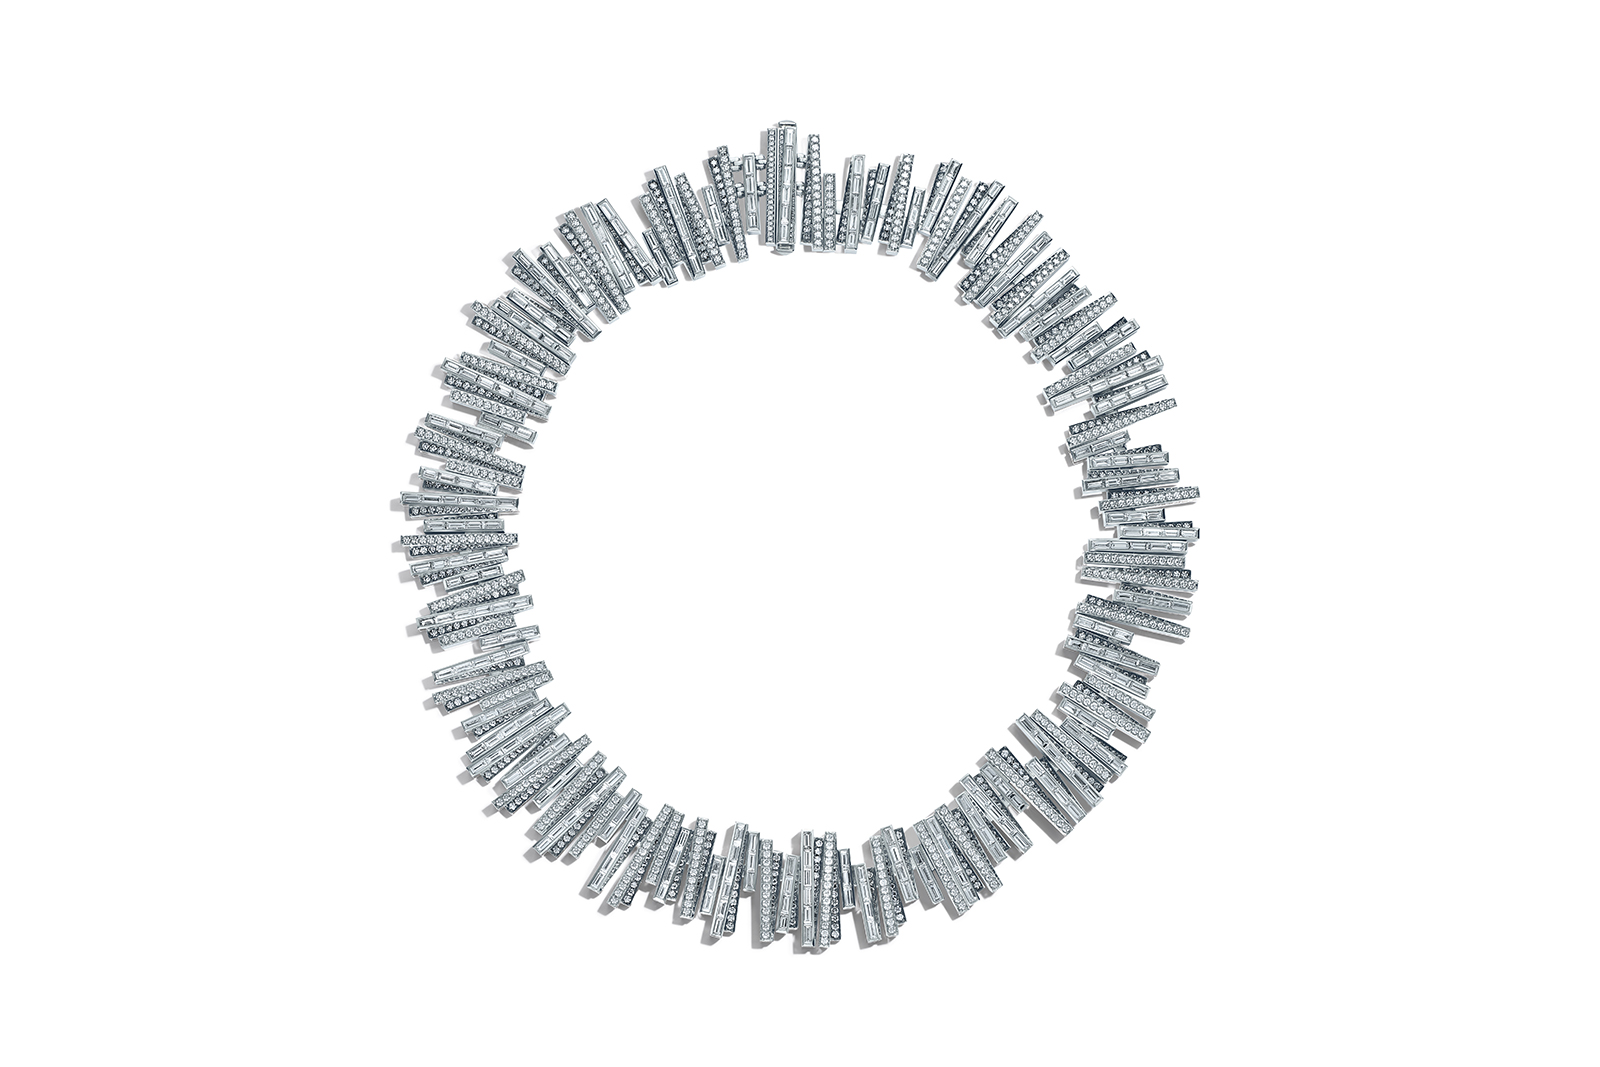 Tiffany & Co. Blue Book 2018 necklace in platinum with baguette and round brilliant white, rare fancy blue grey and grey diamonds, over 63 total carats